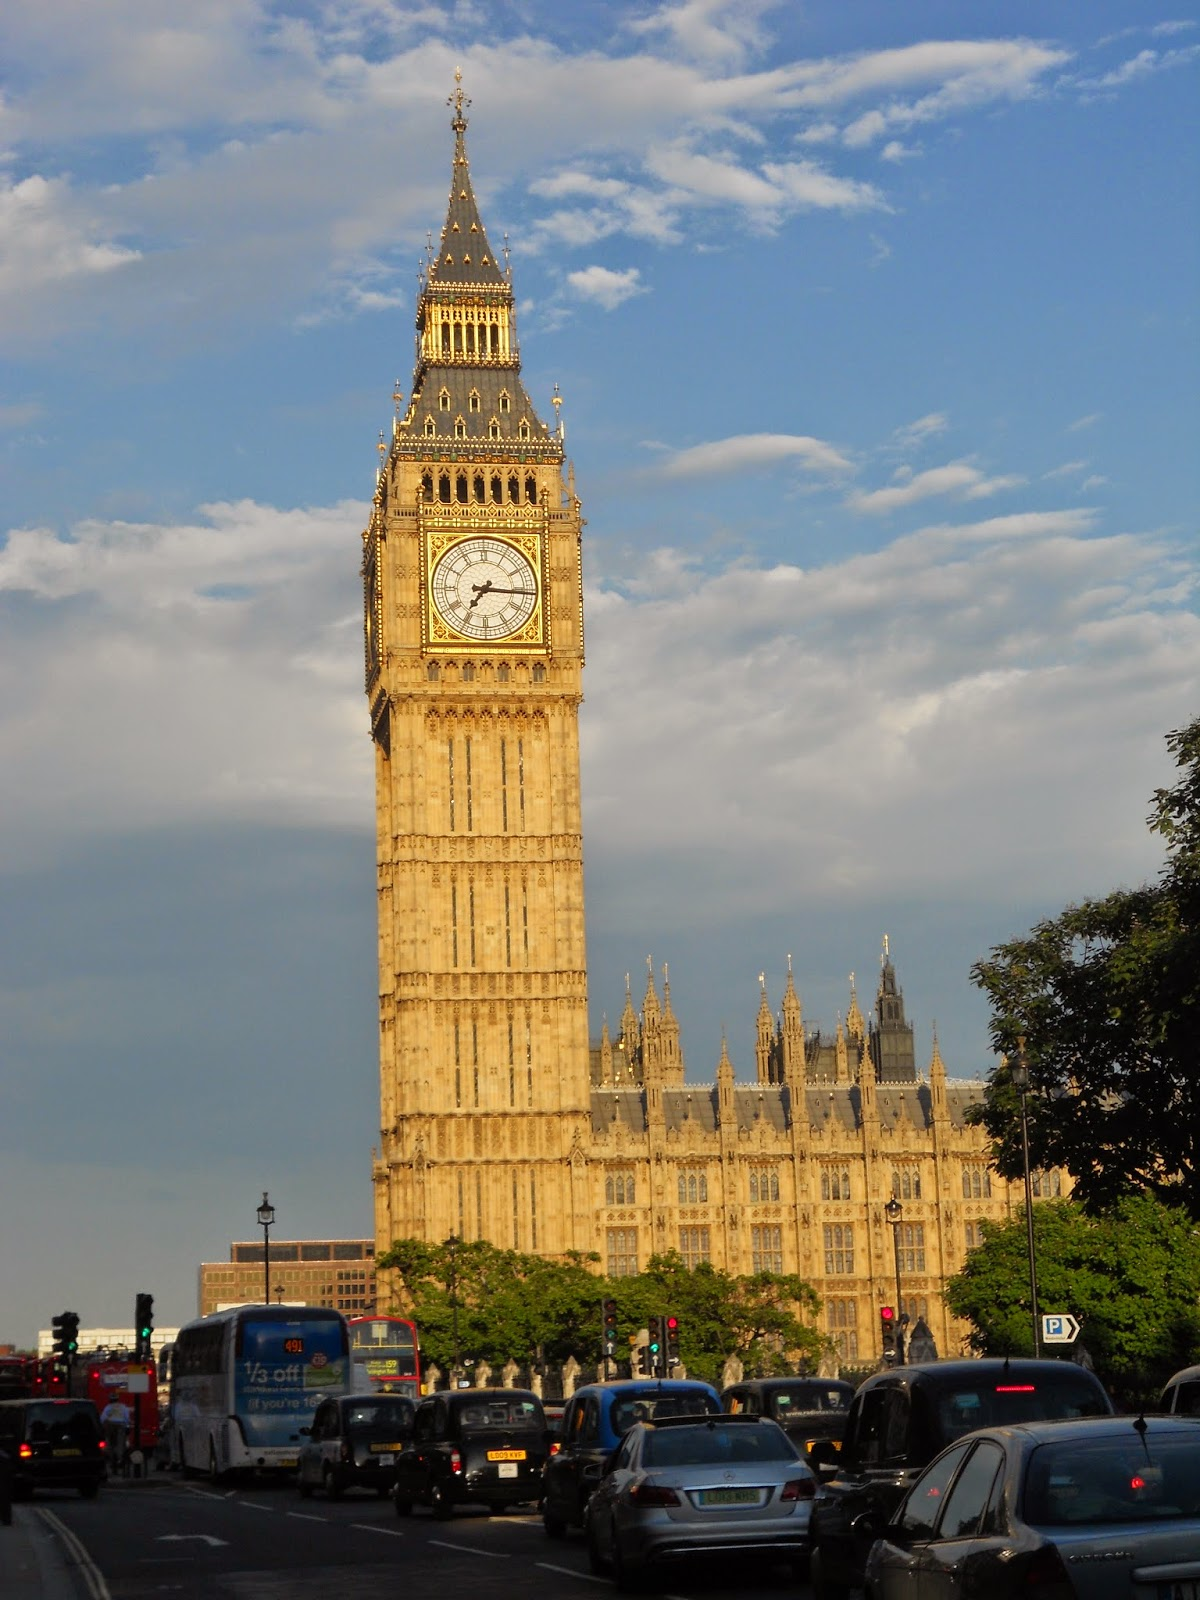 the beauty breakdown thebeautybreakdown london england big ben camden market house of parliament study abroad travel